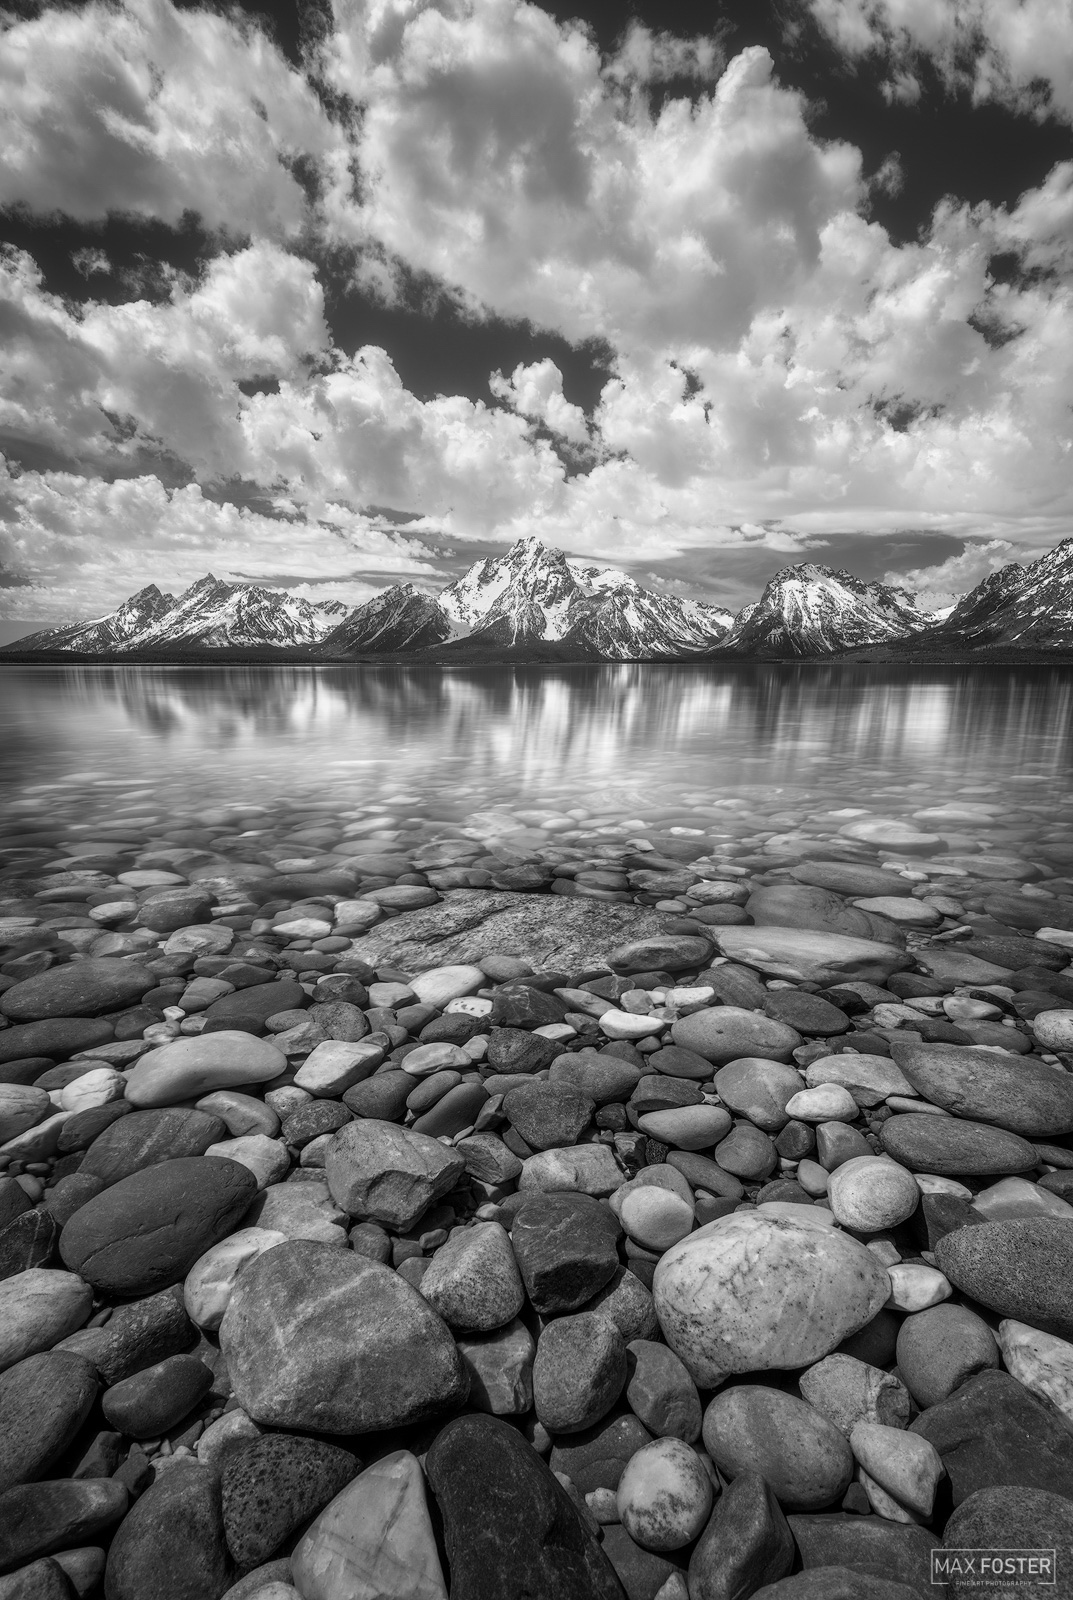 Fine Art Limited Edition of 100 The black and white or monochrome version of Rainbow Rocks, taken at Grand Teton National Park...